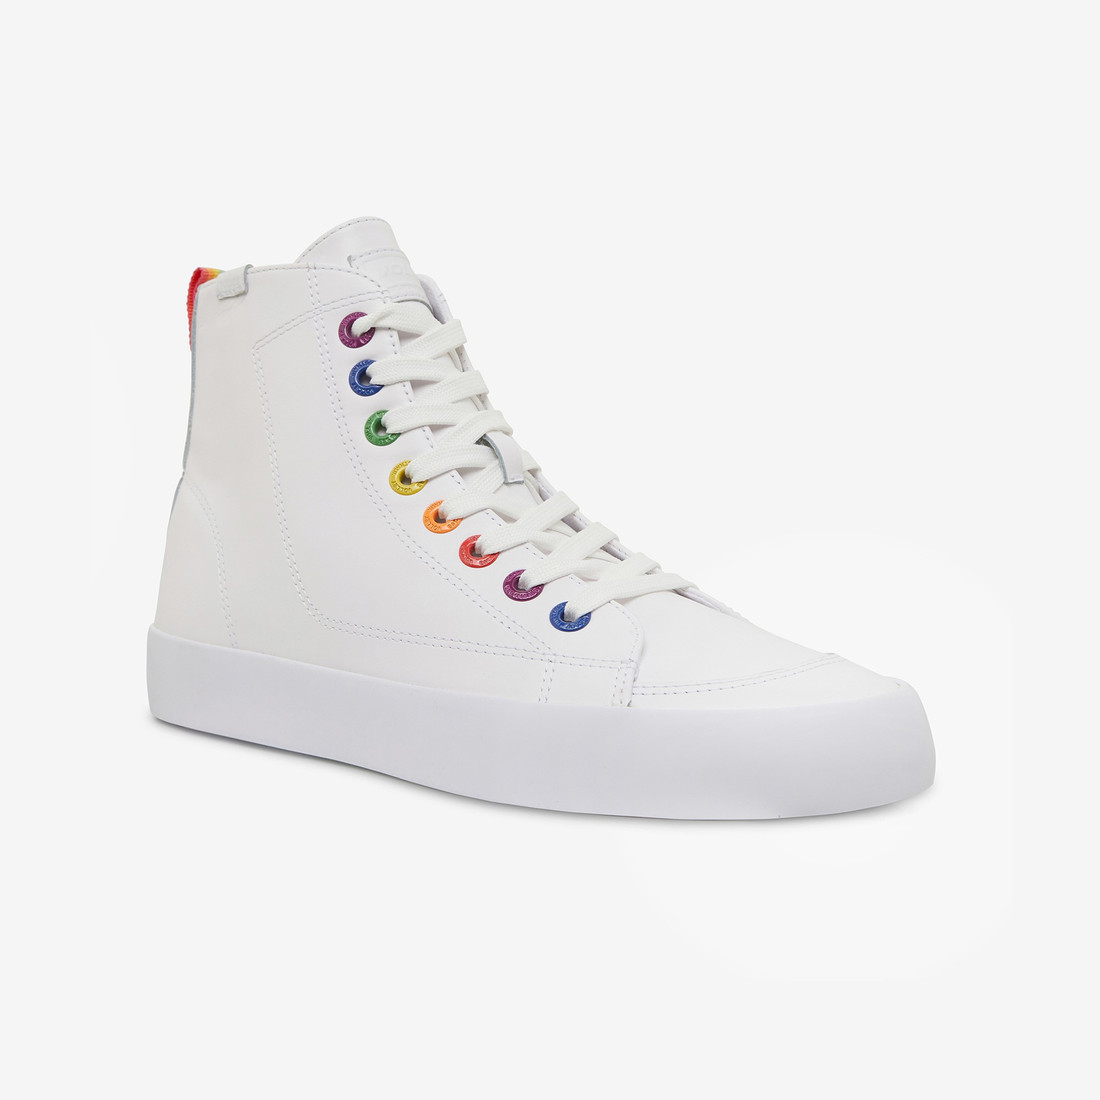 Volley UnisexAdultPRIDE DEUCE LEATHER HIGH White   2